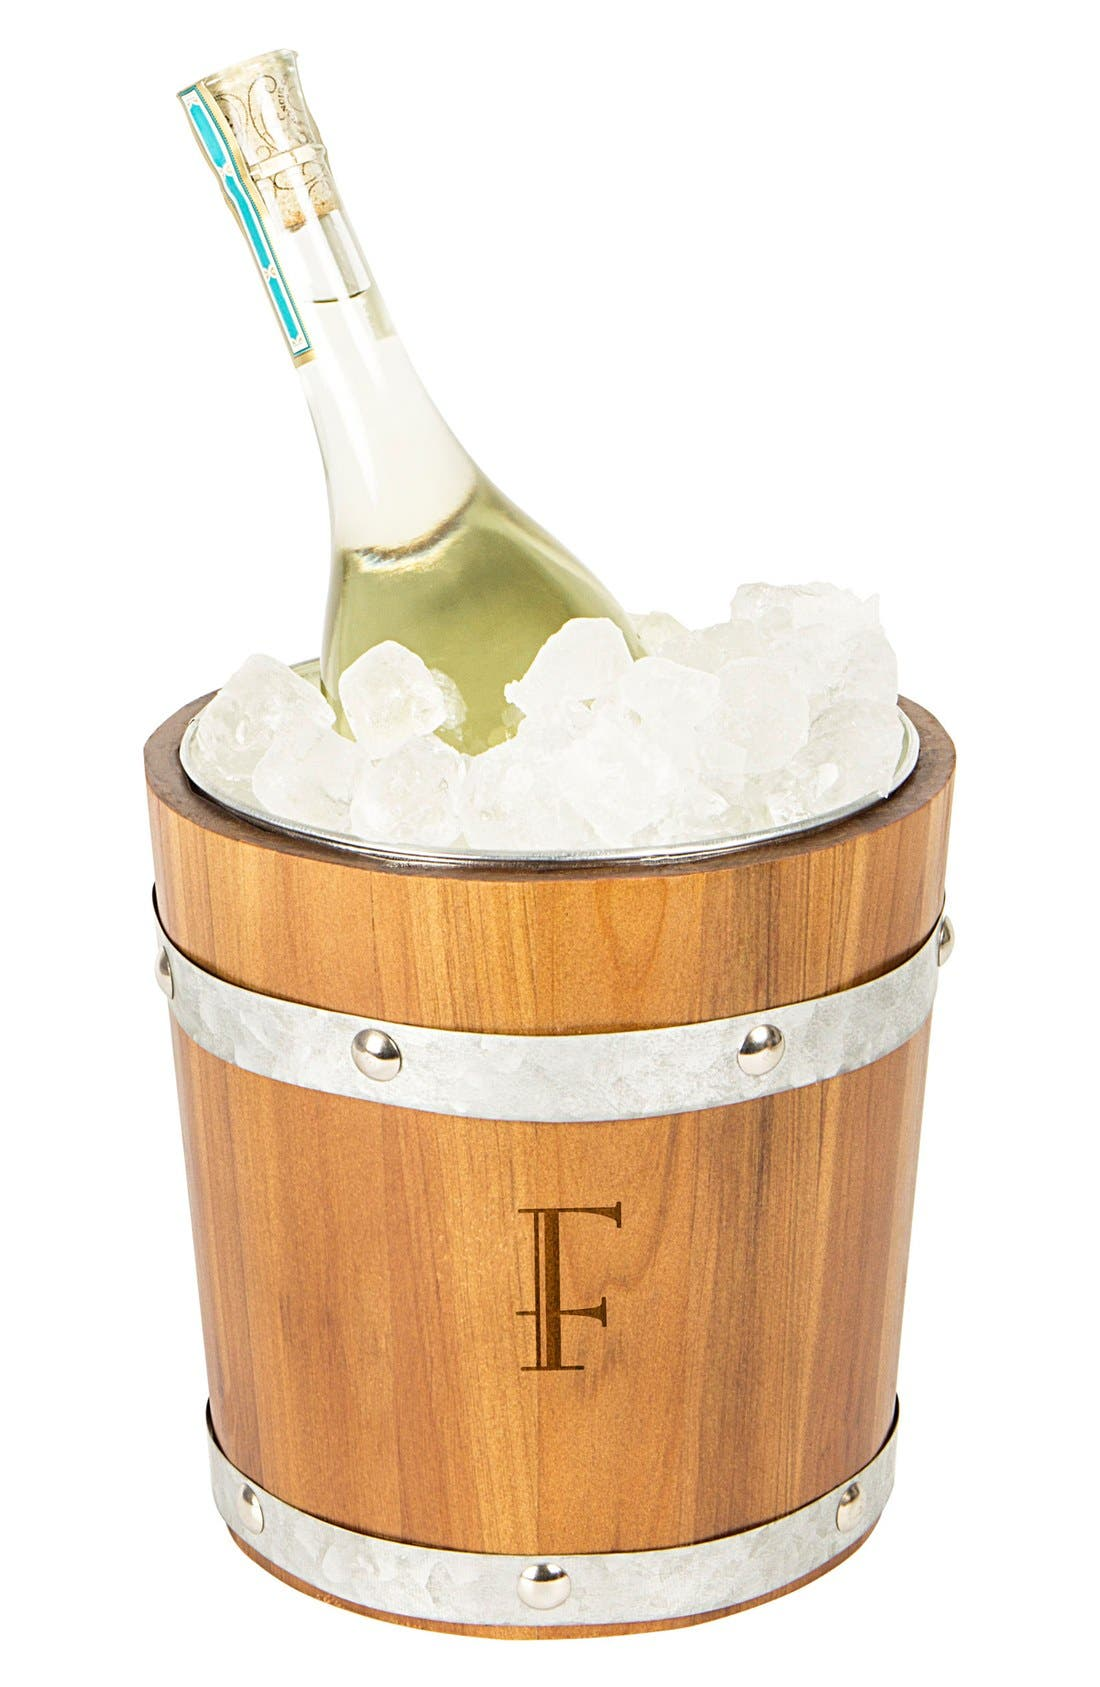 Alternate Image 1 Selected - Cathy's Concepts Rustic Monogram Ice Bucket